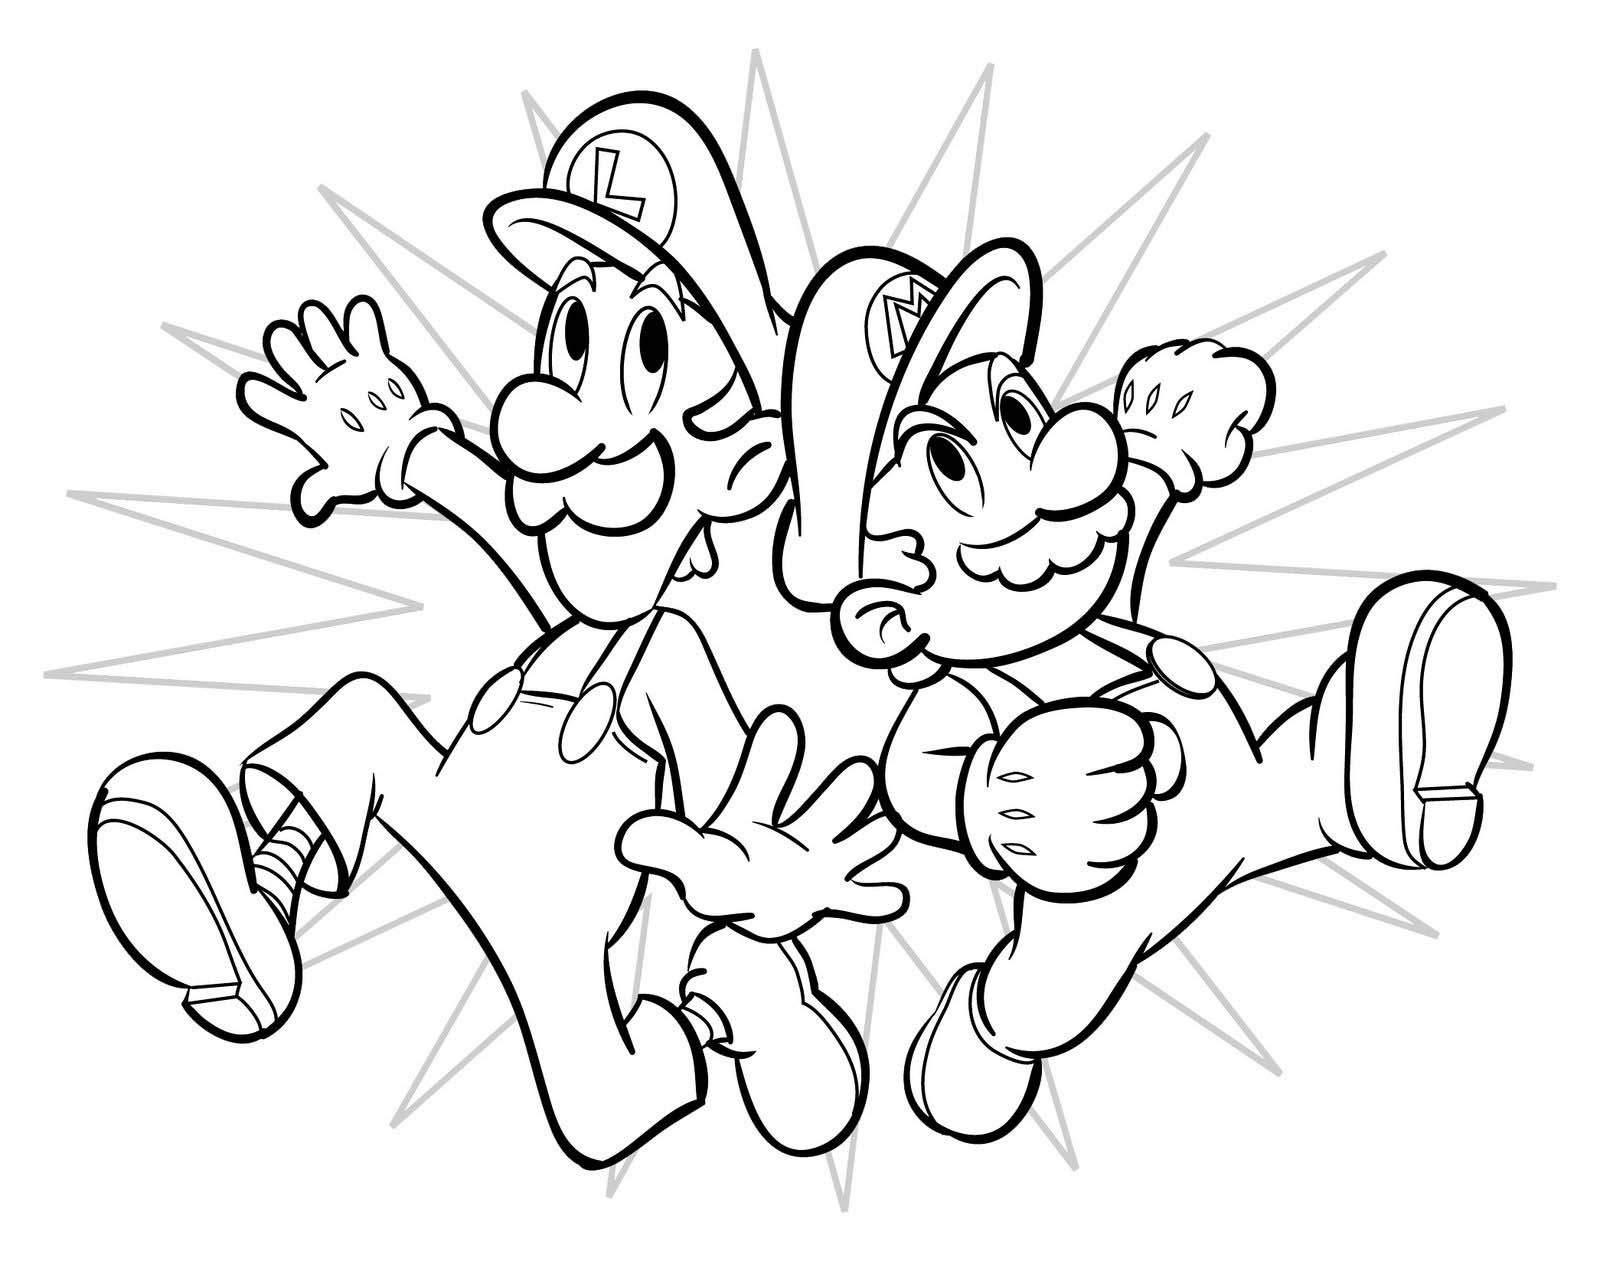 pagees to coloring pages Free Printable Mario Coloring Pages For